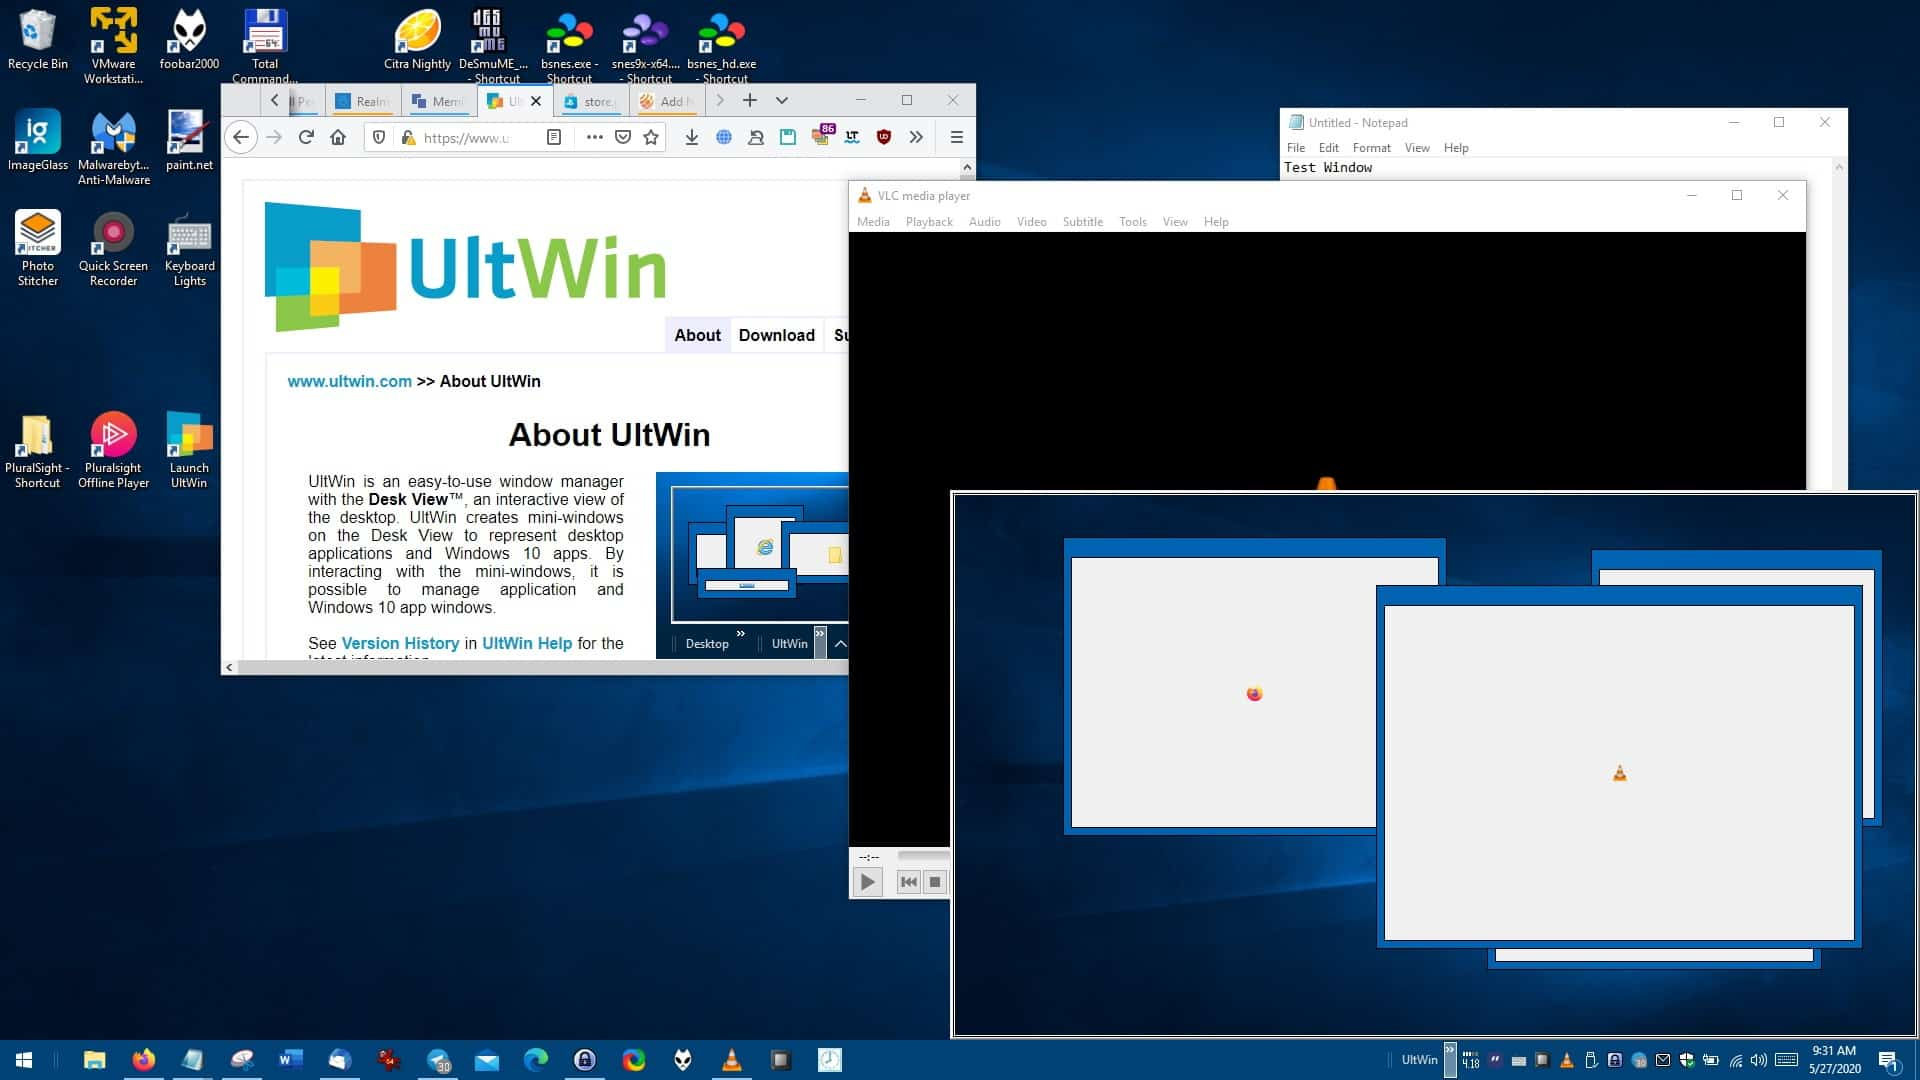 UltWin is a freeware window manager that can help you organize your desktop